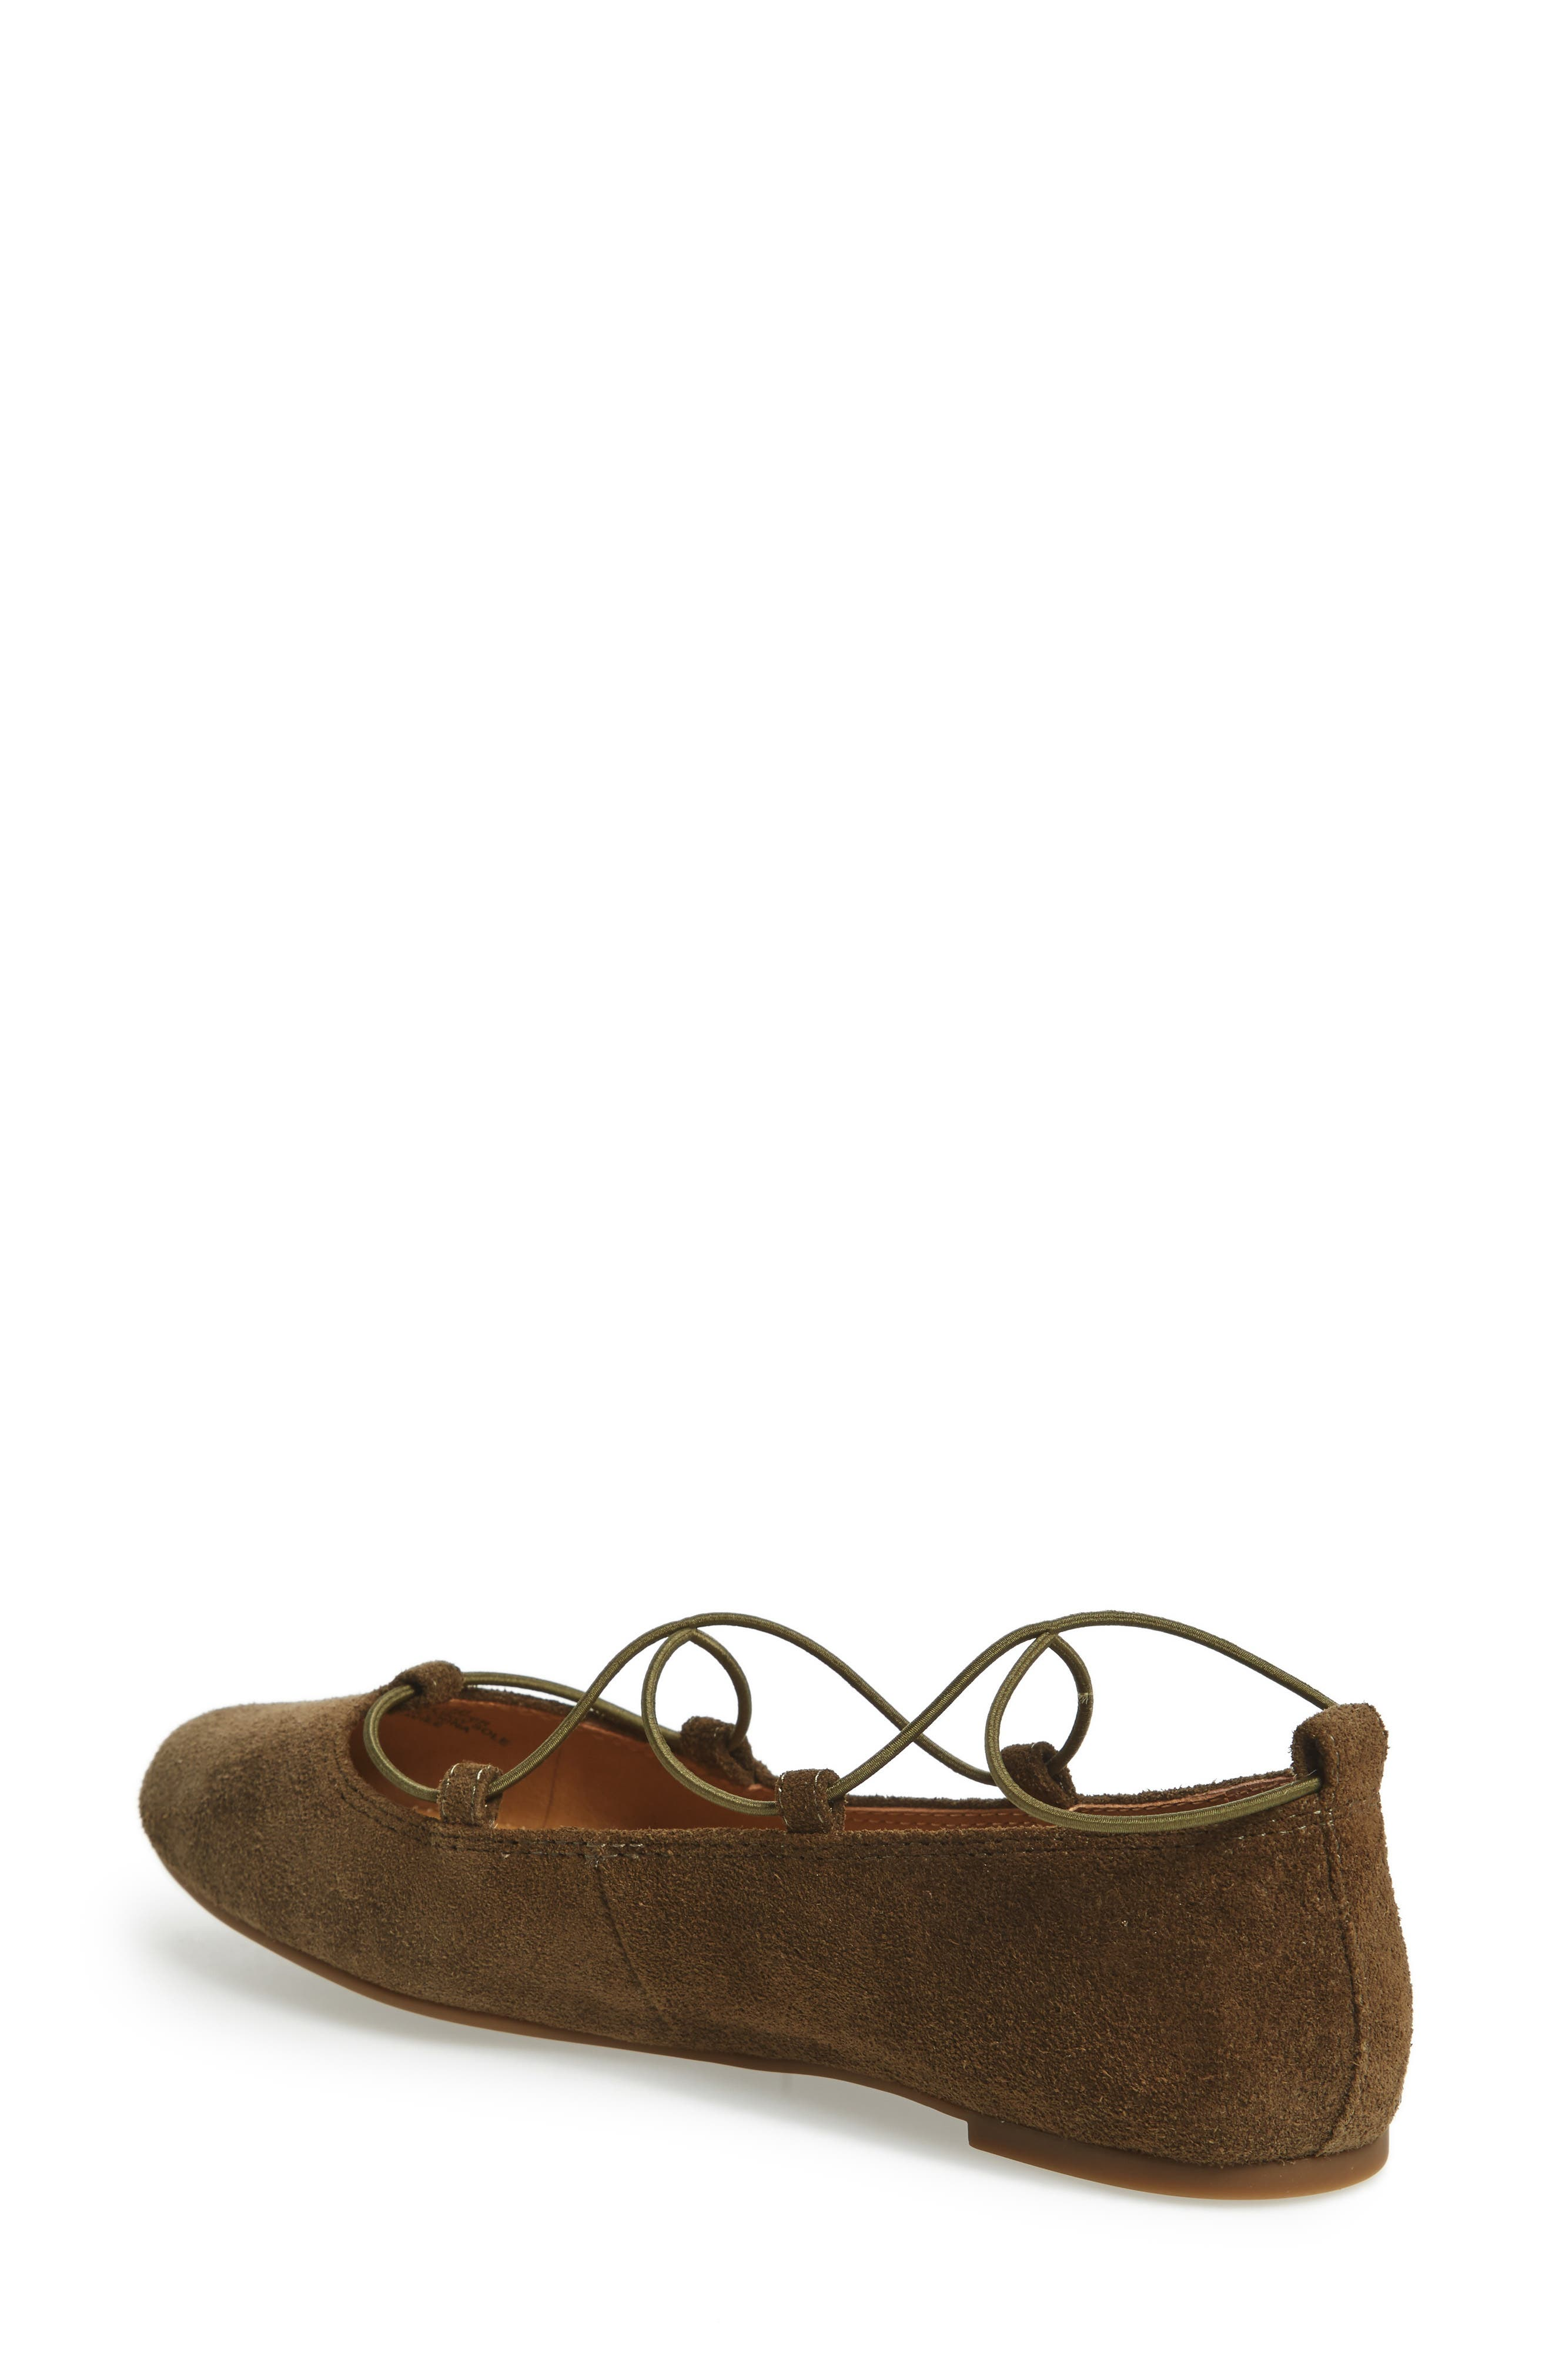 'Aviee' Lace-Up Flat,                             Alternate thumbnail 17, color,